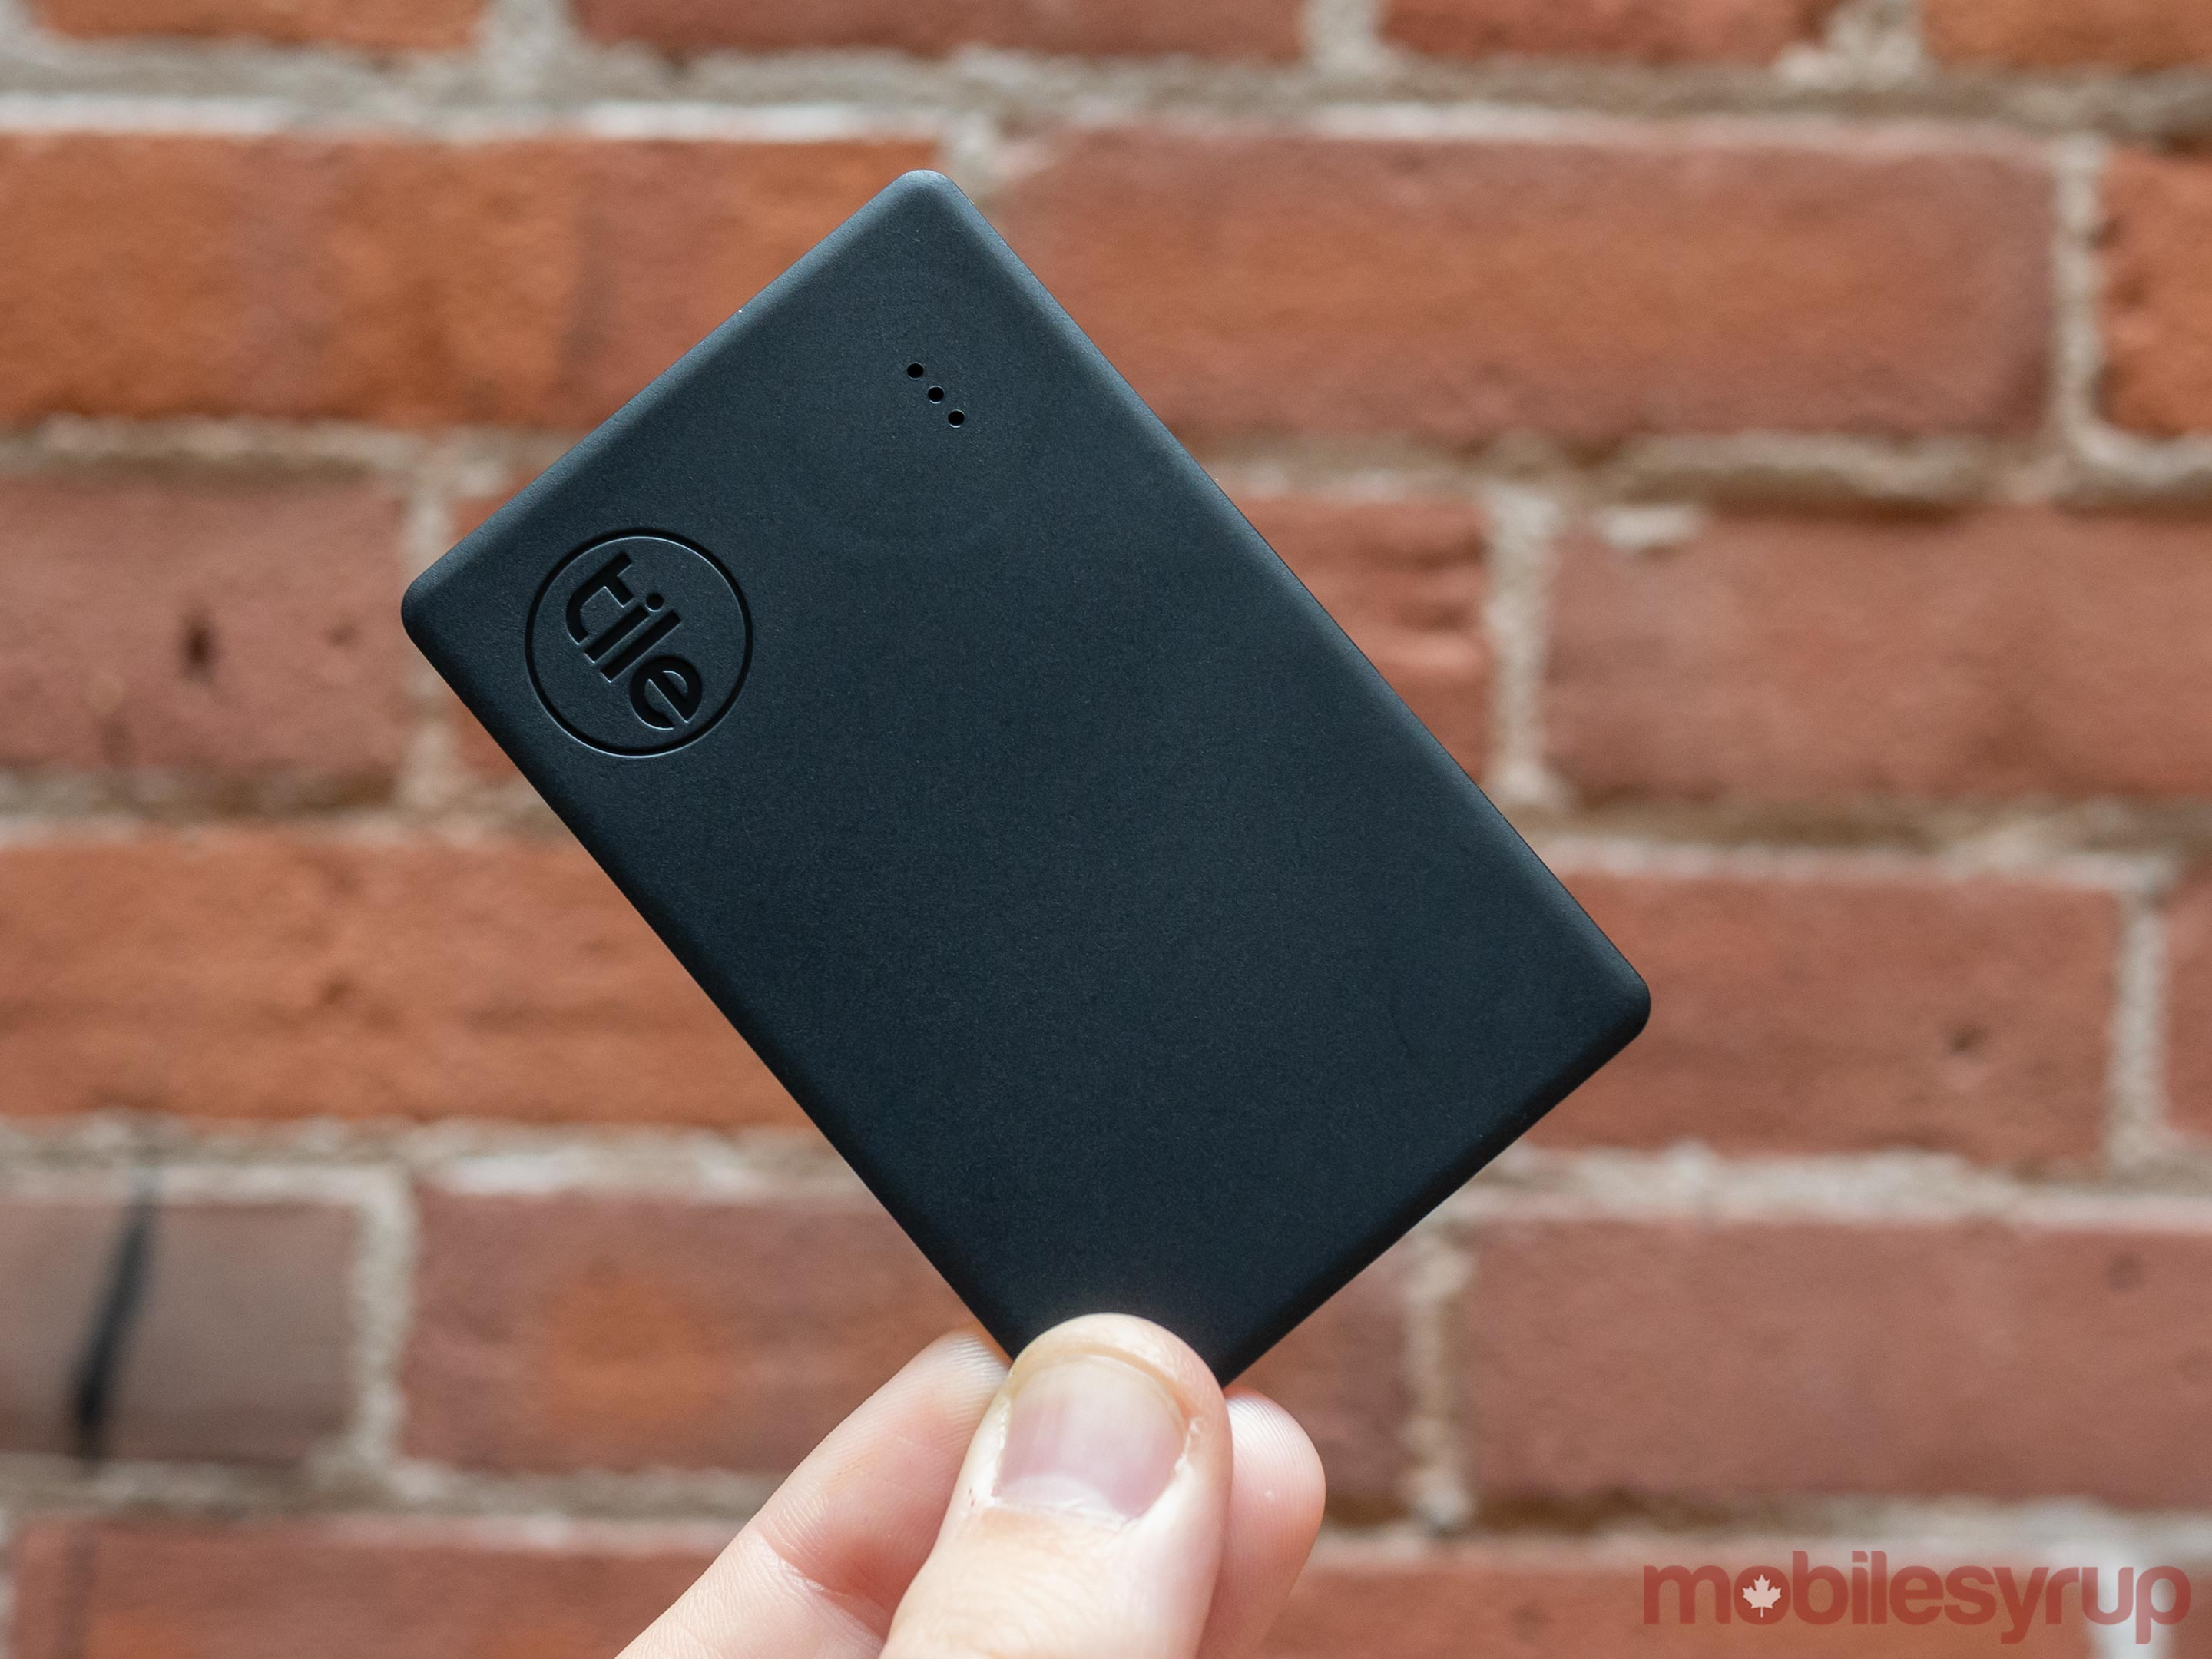 Tile reveals new Bluetooth trackers, including Sticker ...